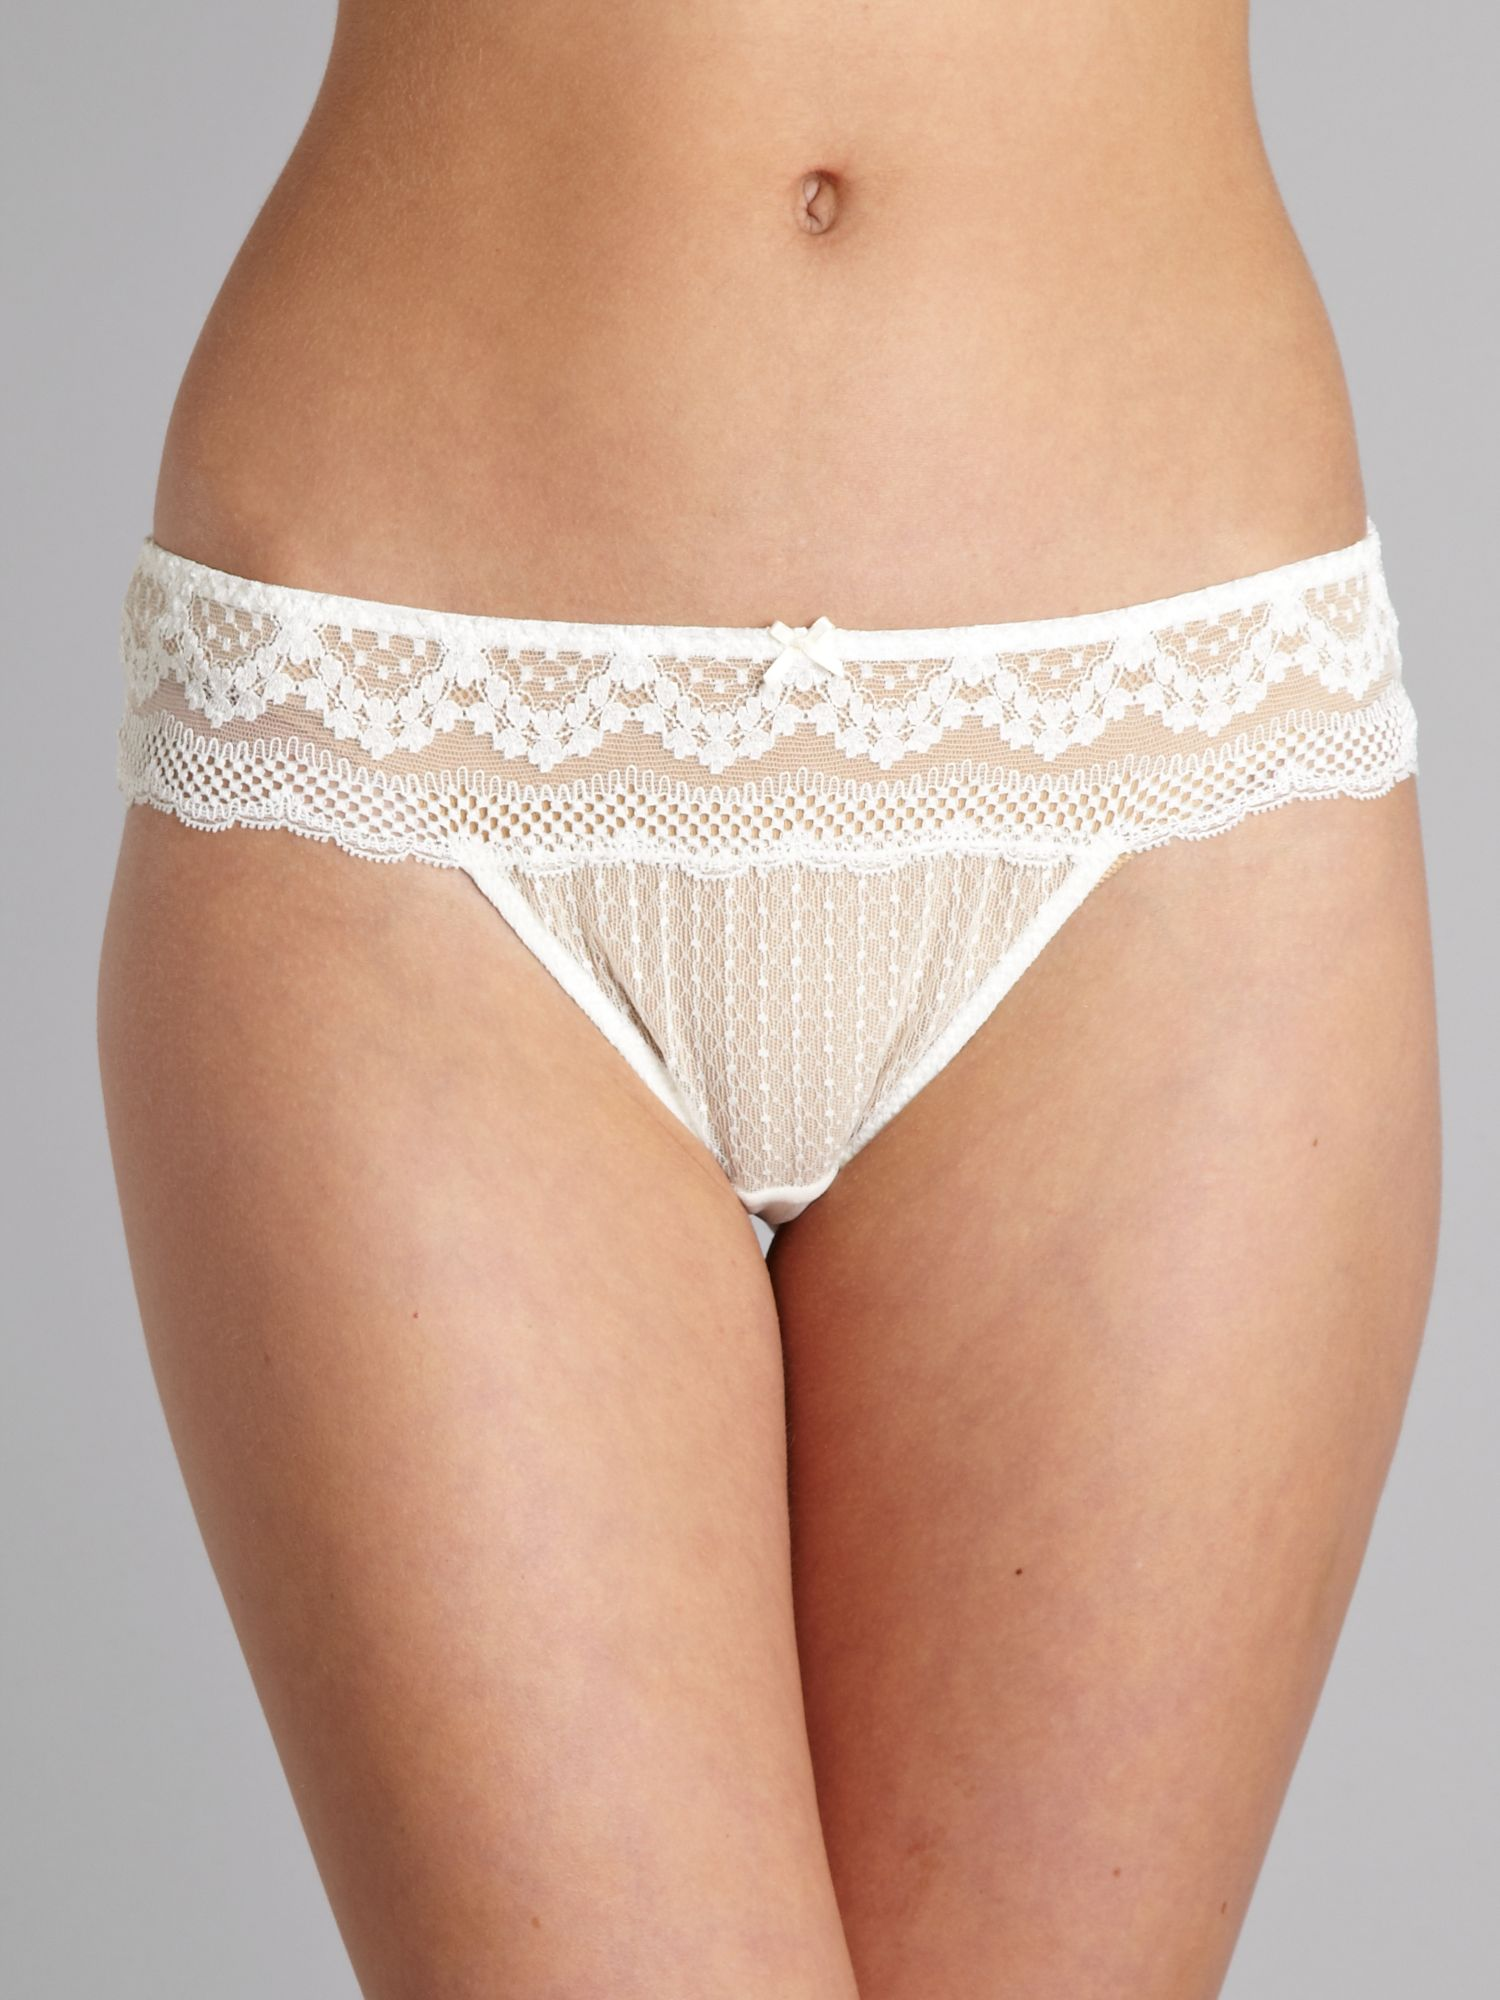 City Chic Lace Tanga